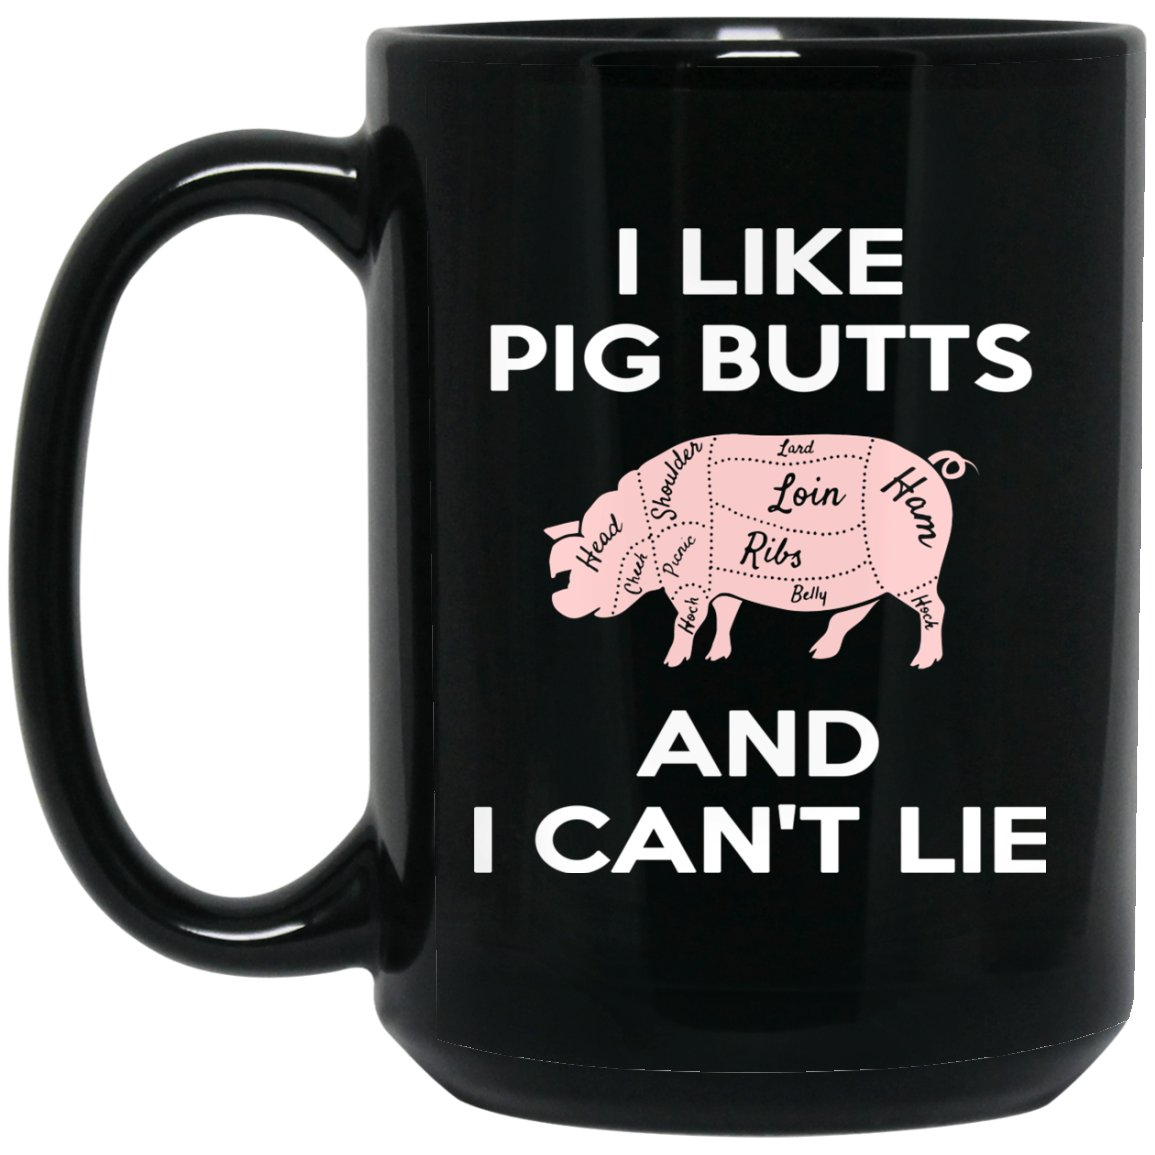 Funny Barbecue Gift - I like pig butts and I can not lie Large Black Mug